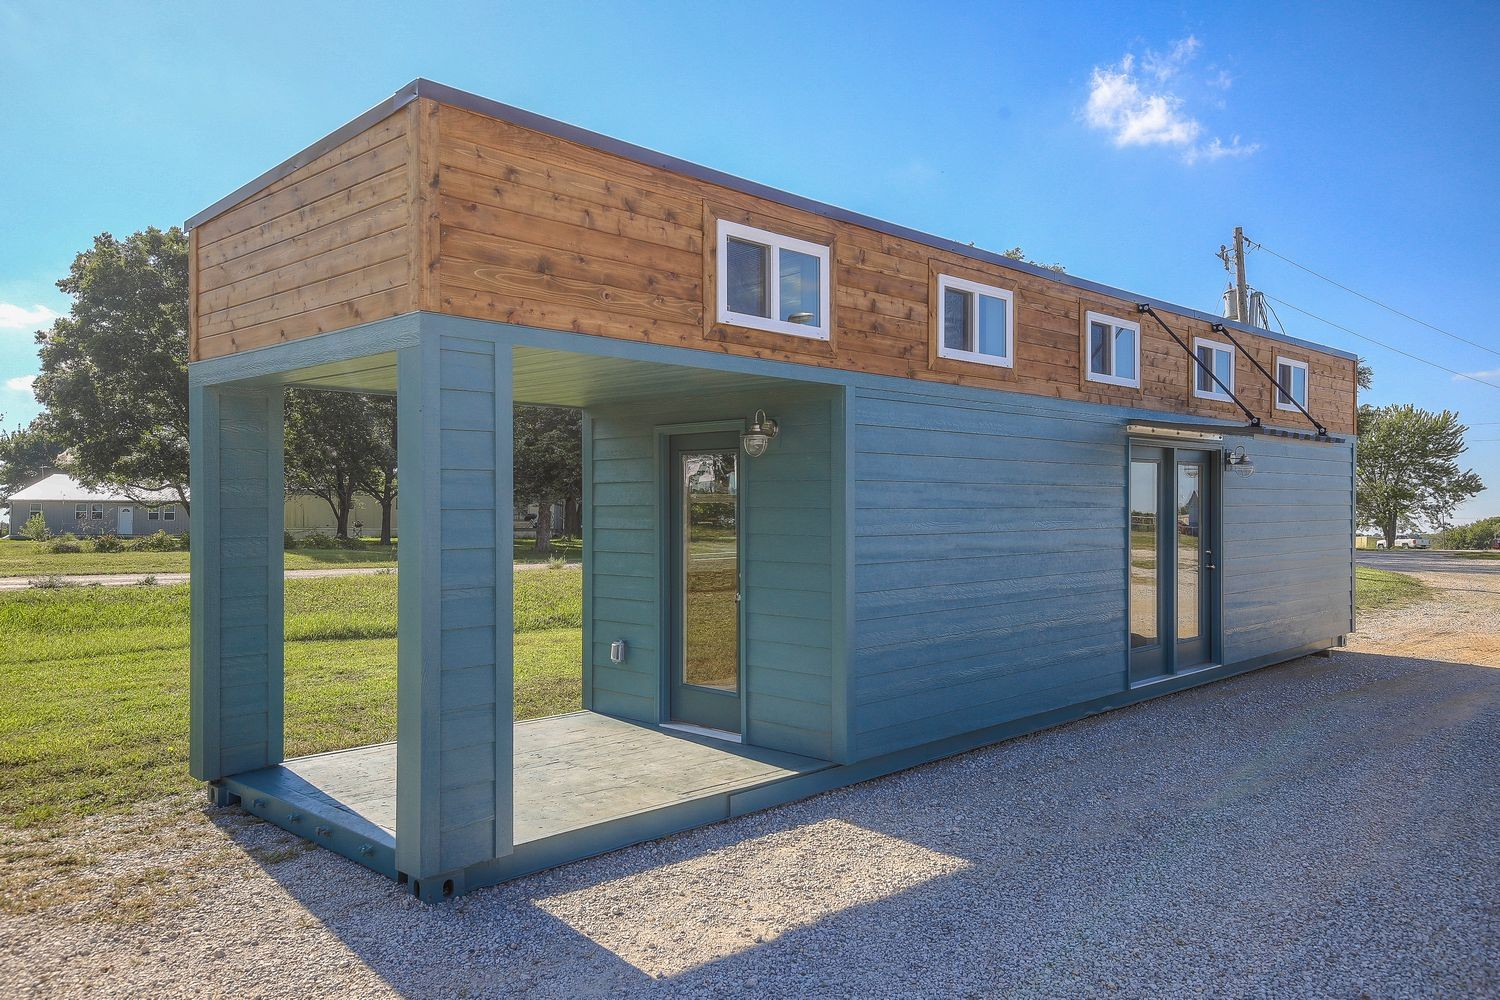 Small Shipping Container Homes 5 shipping container homes you can order right now - curbed